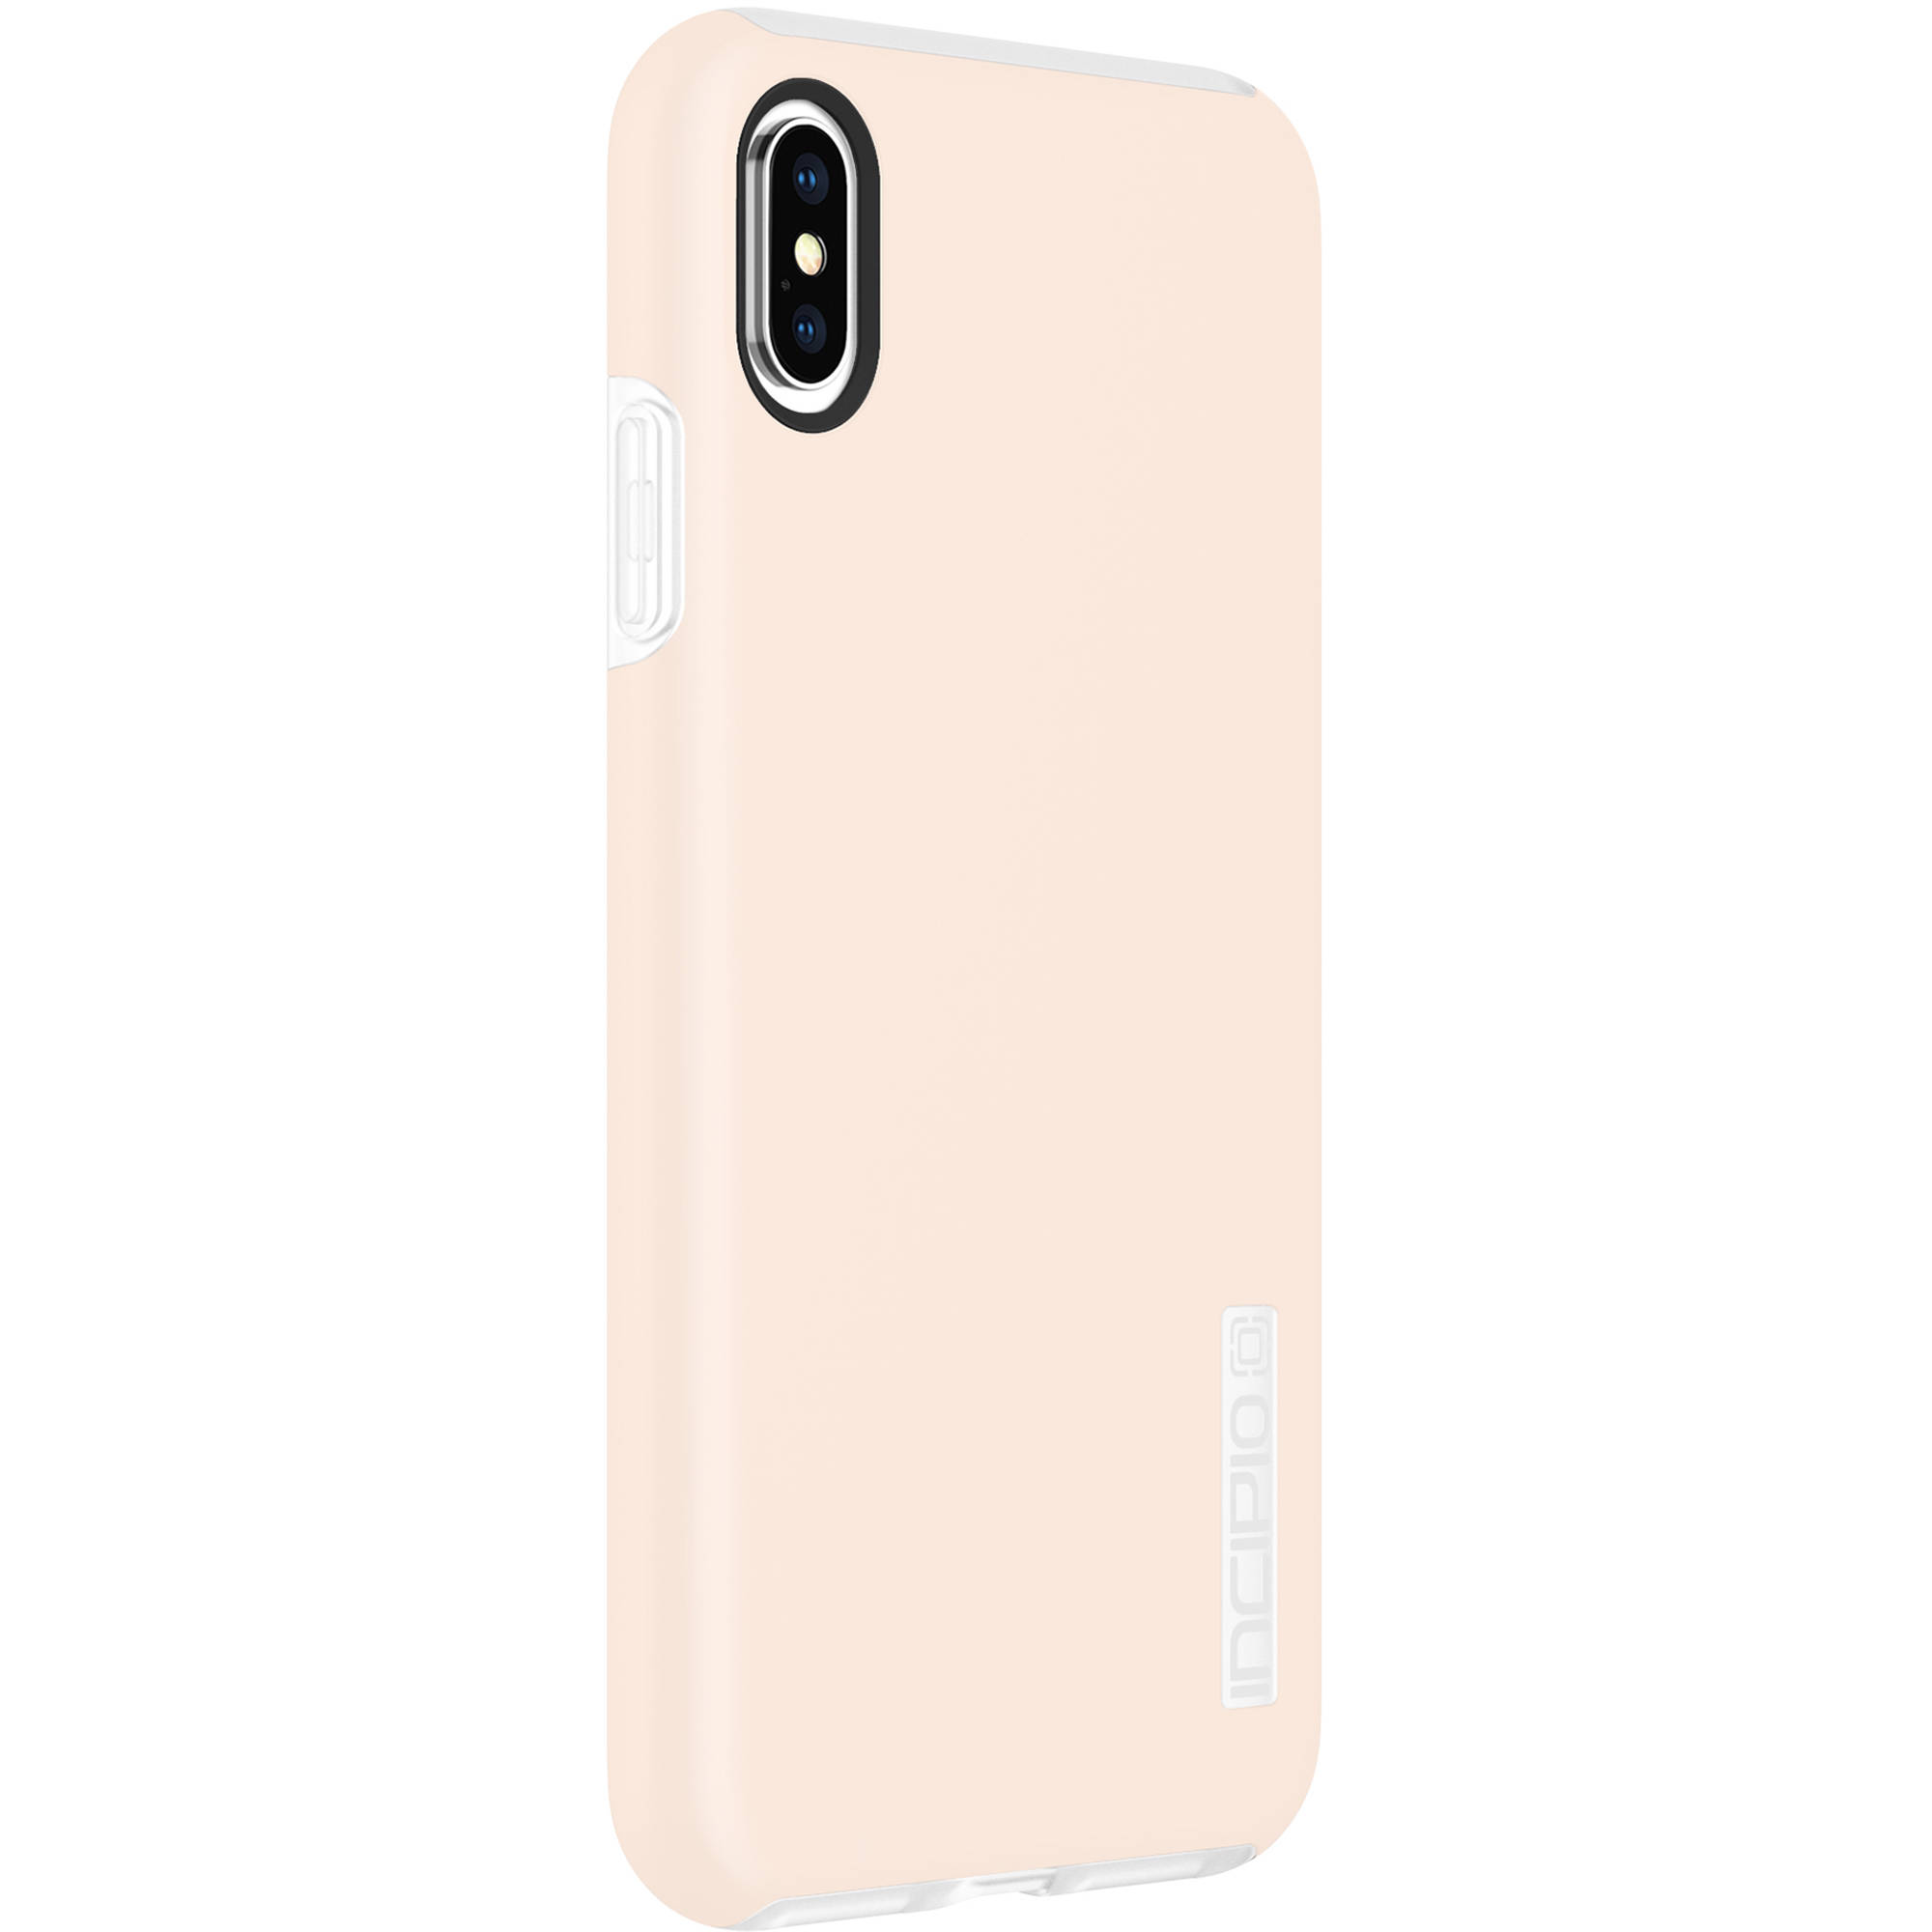 newest 8bfff 39a17 Incipio DualPro Case for iPhone Xs Max (Rose Blush) IPH-1757-RSB